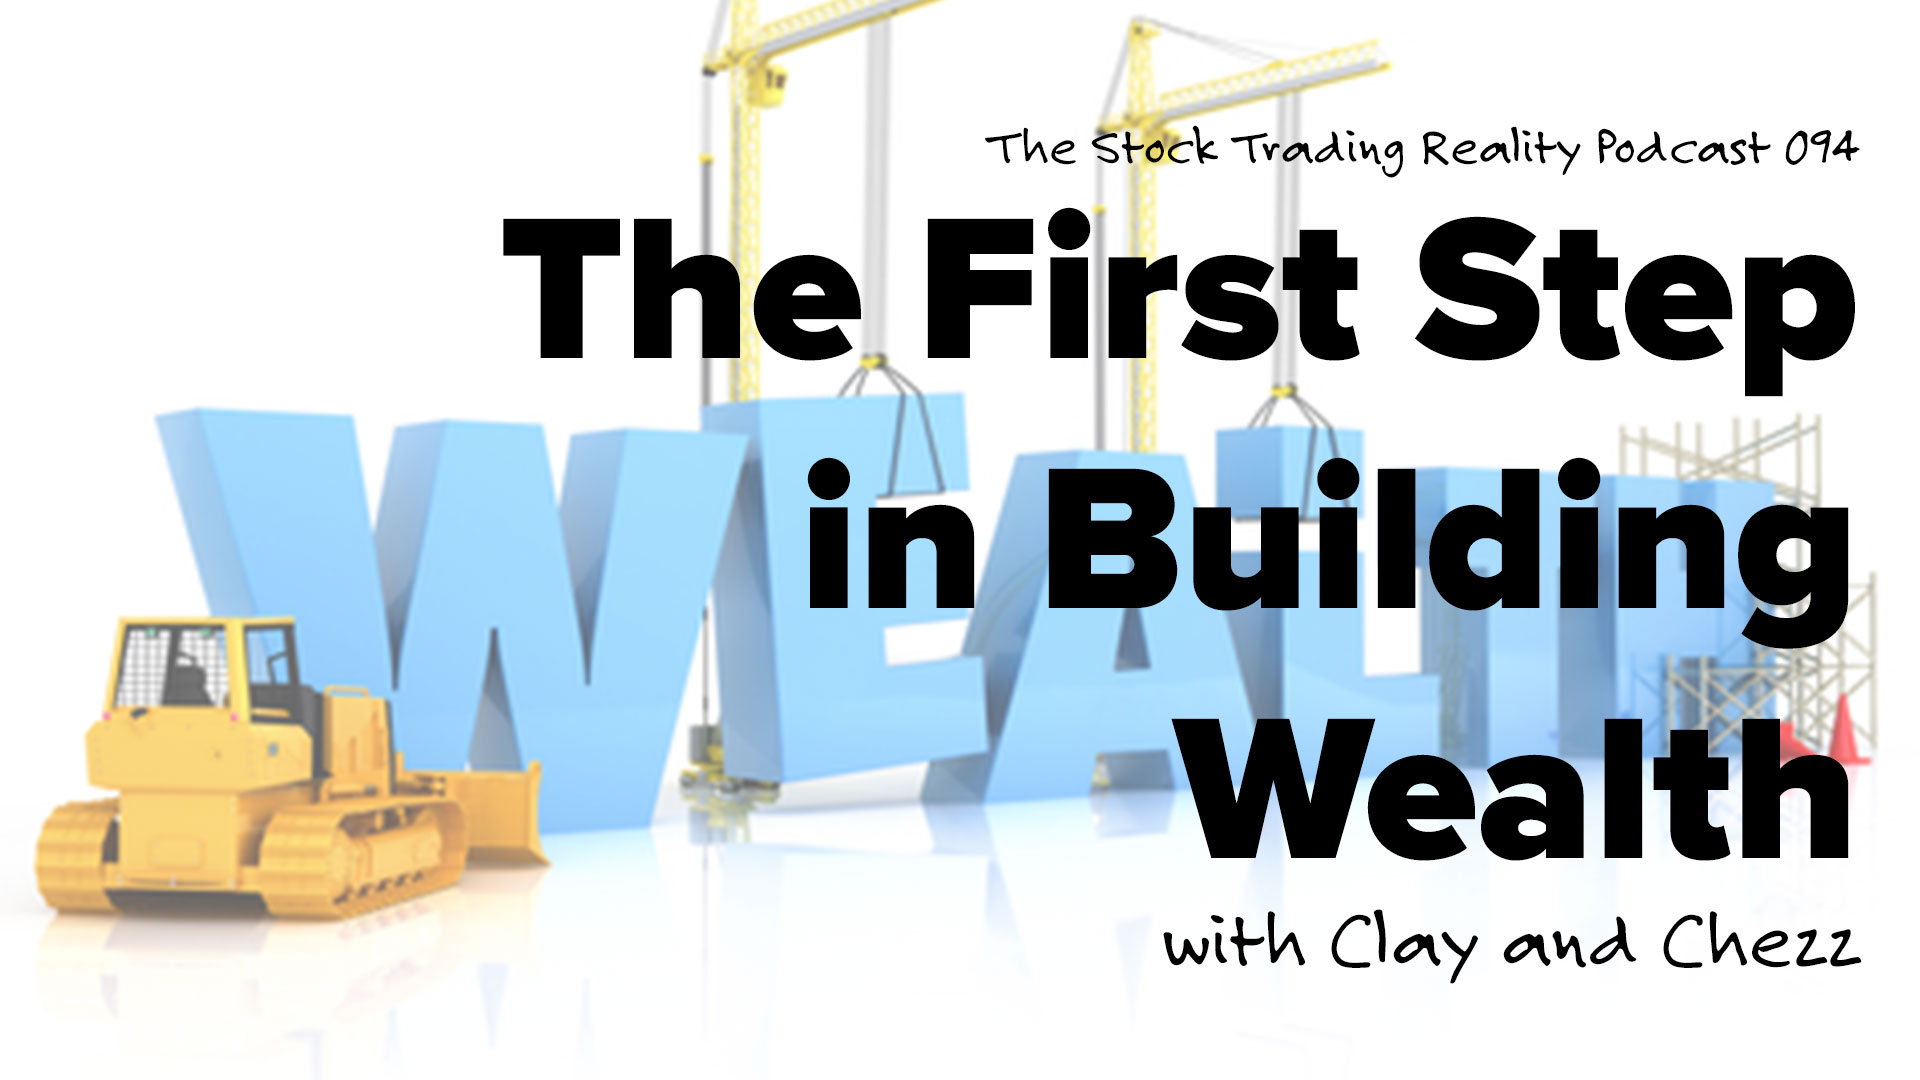 STR 094: The First Step in Building Wealth